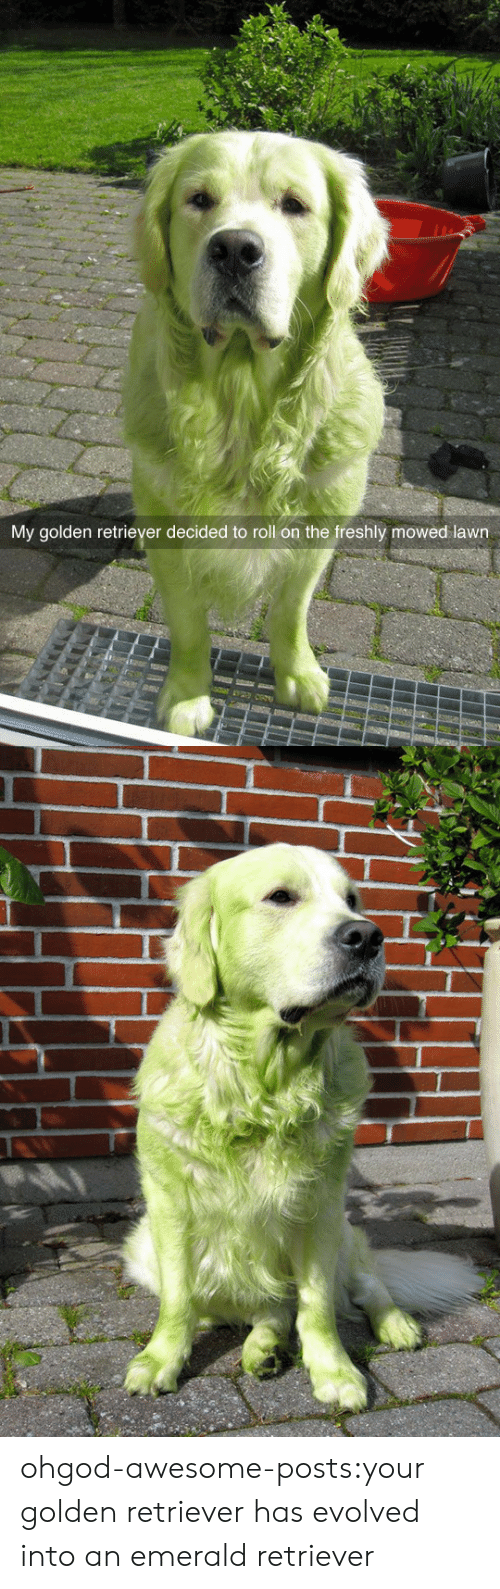 retriever: My golden retriever decided to roll on the freshly mowed lawn ohgod-awesome-posts:your golden retriever has evolved into an emerald retriever